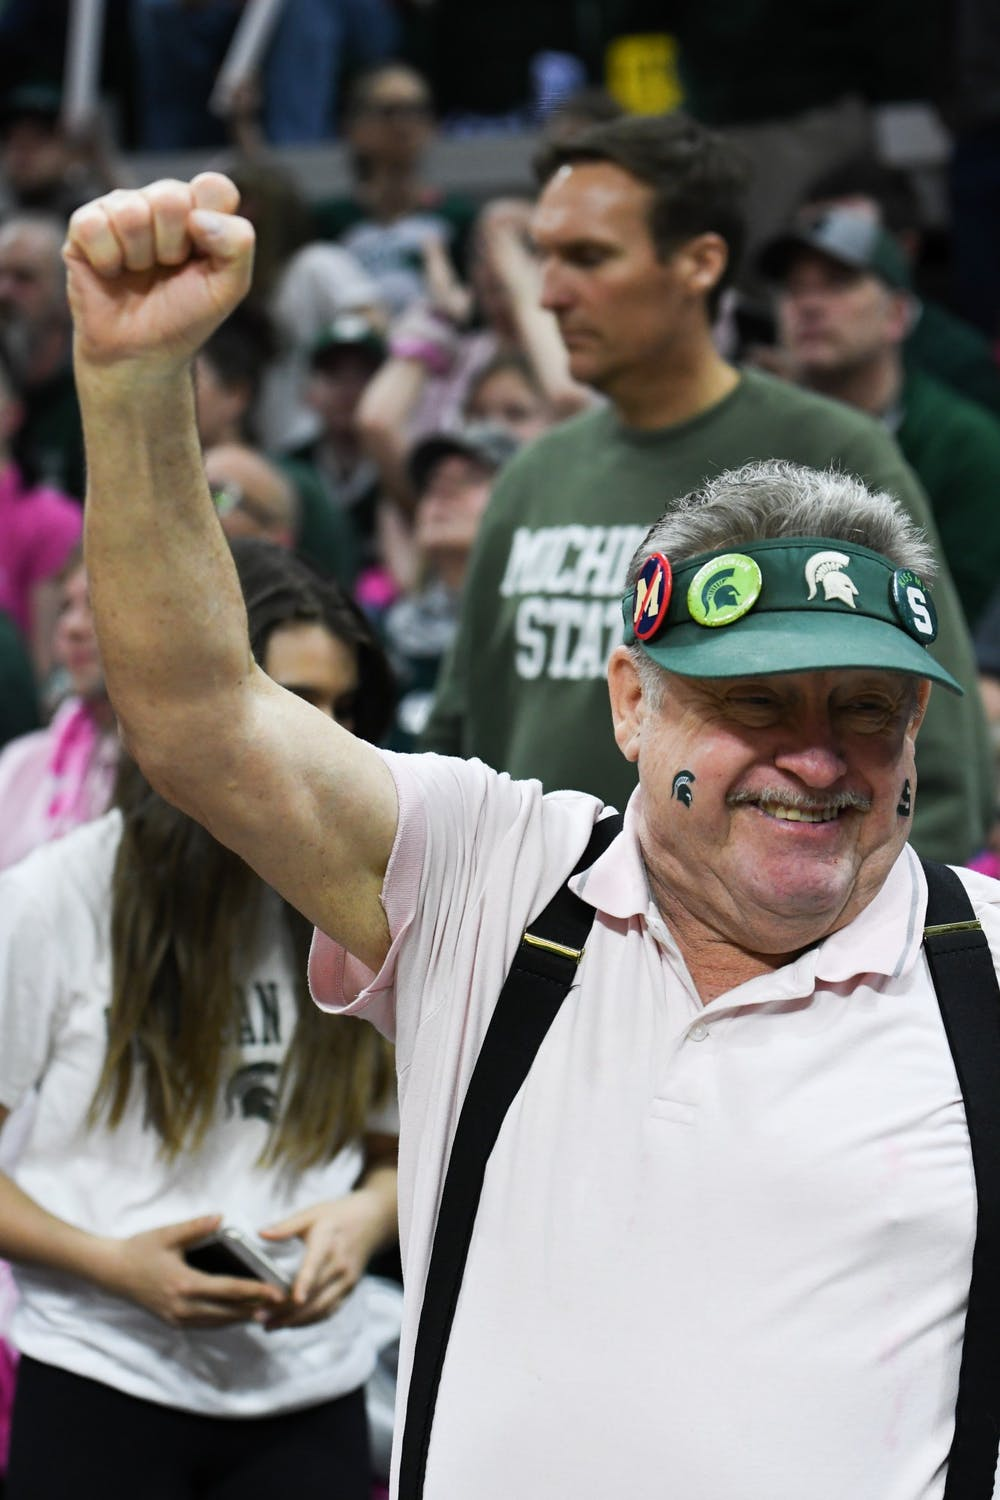 A spartan fan raises his fist in the air during the women's basketball game against Michigan at the Breslin Center on February 23, 2020. The Spartans fell to the Wolverines 65-57.